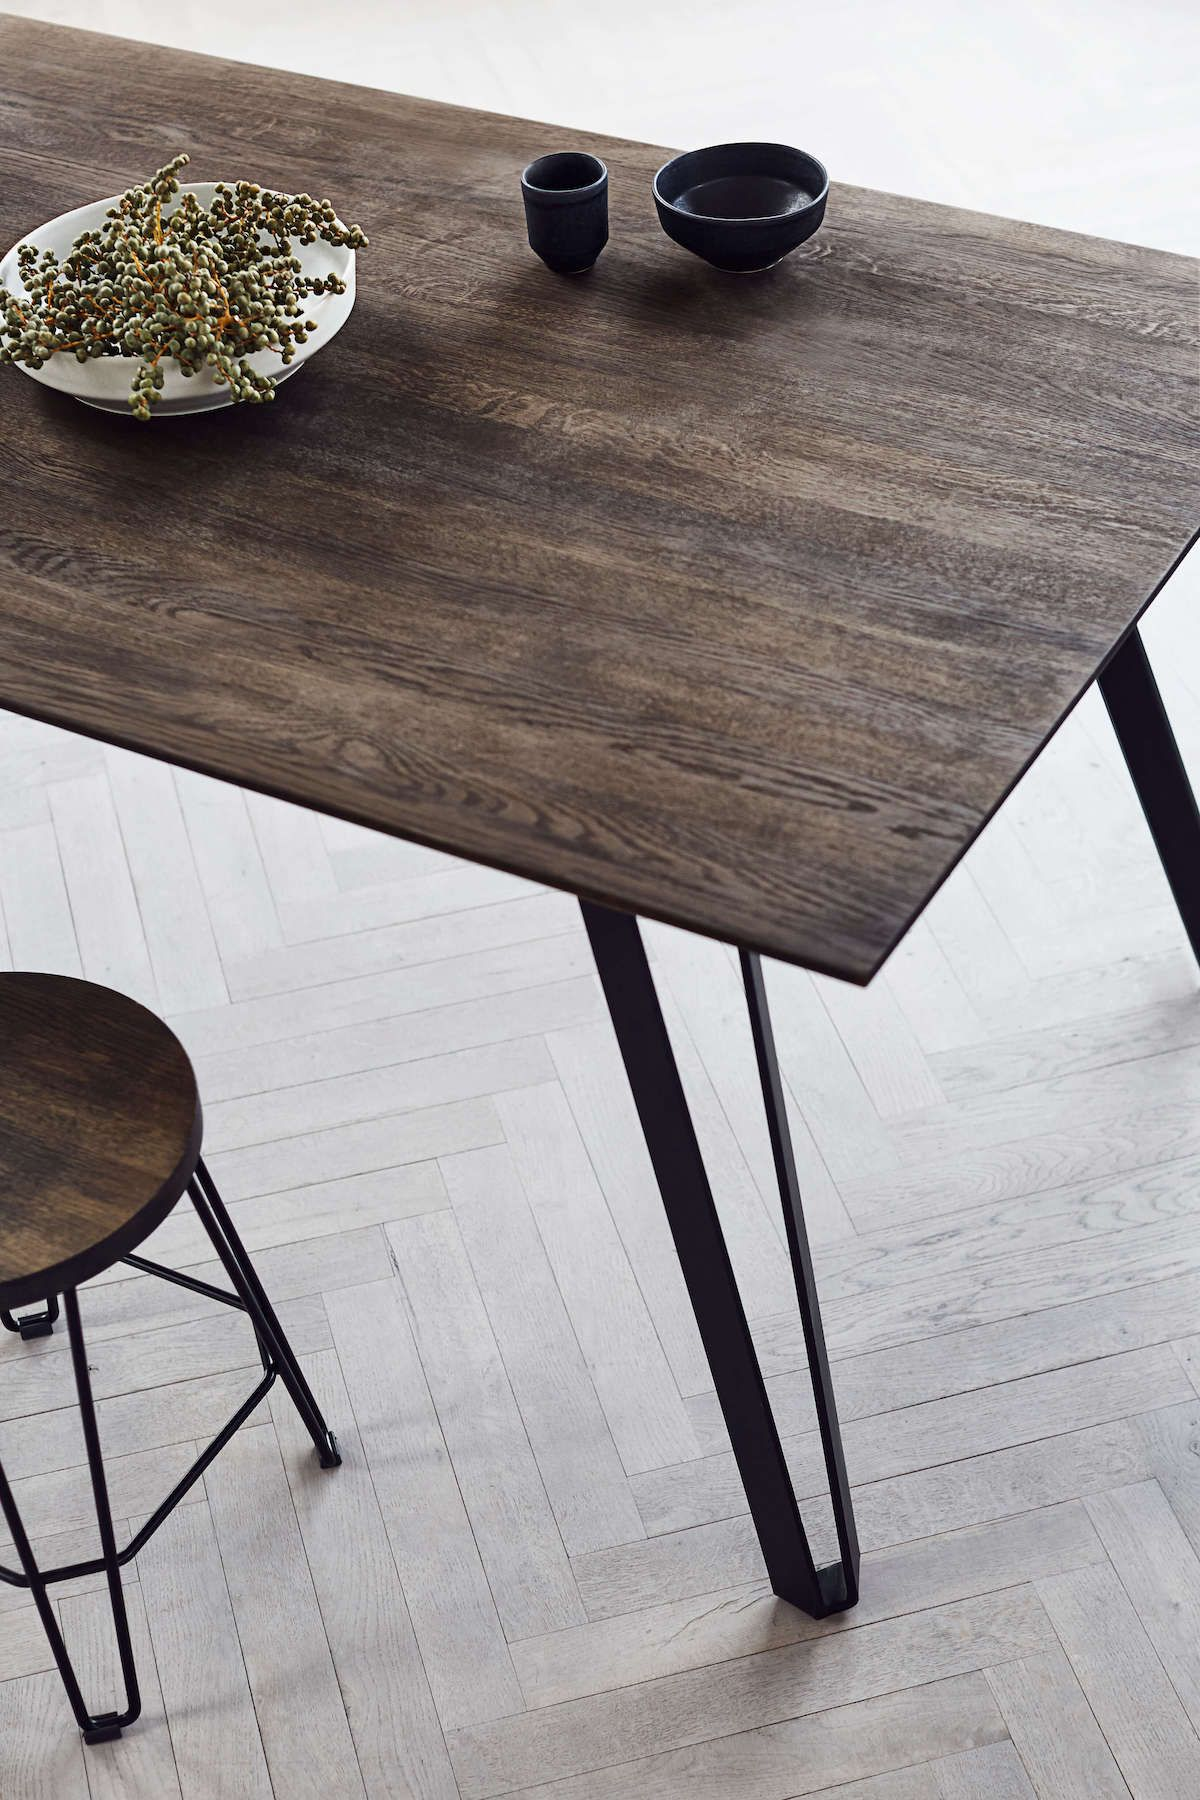 Dining Table Space Smoked L220 Dining Table In Kitchen Rectangular Dining Room Table Dining Table